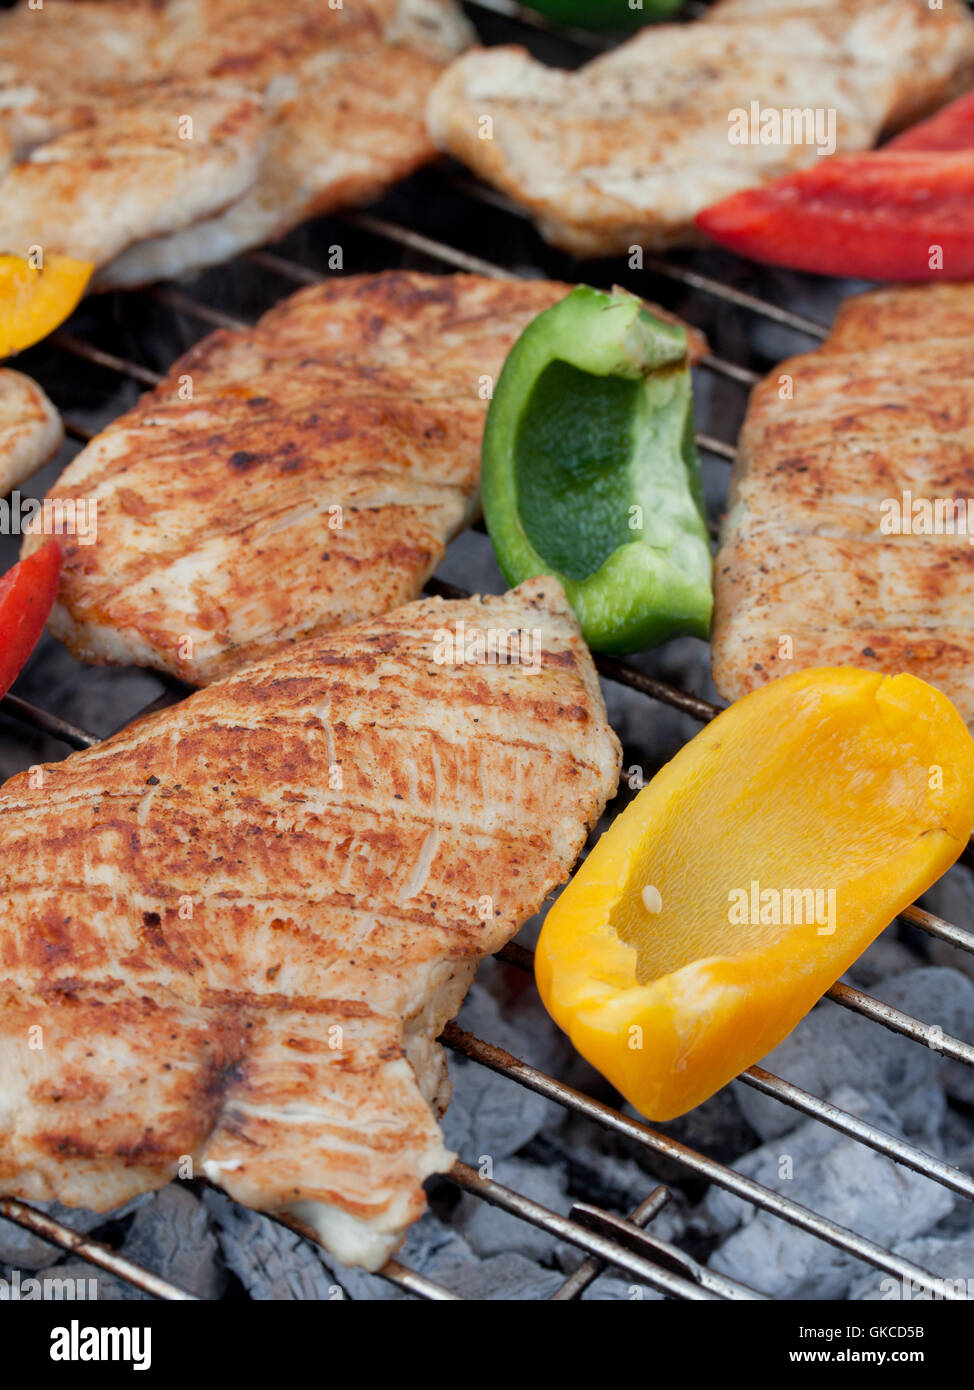 hearty barbecue - Stock Image